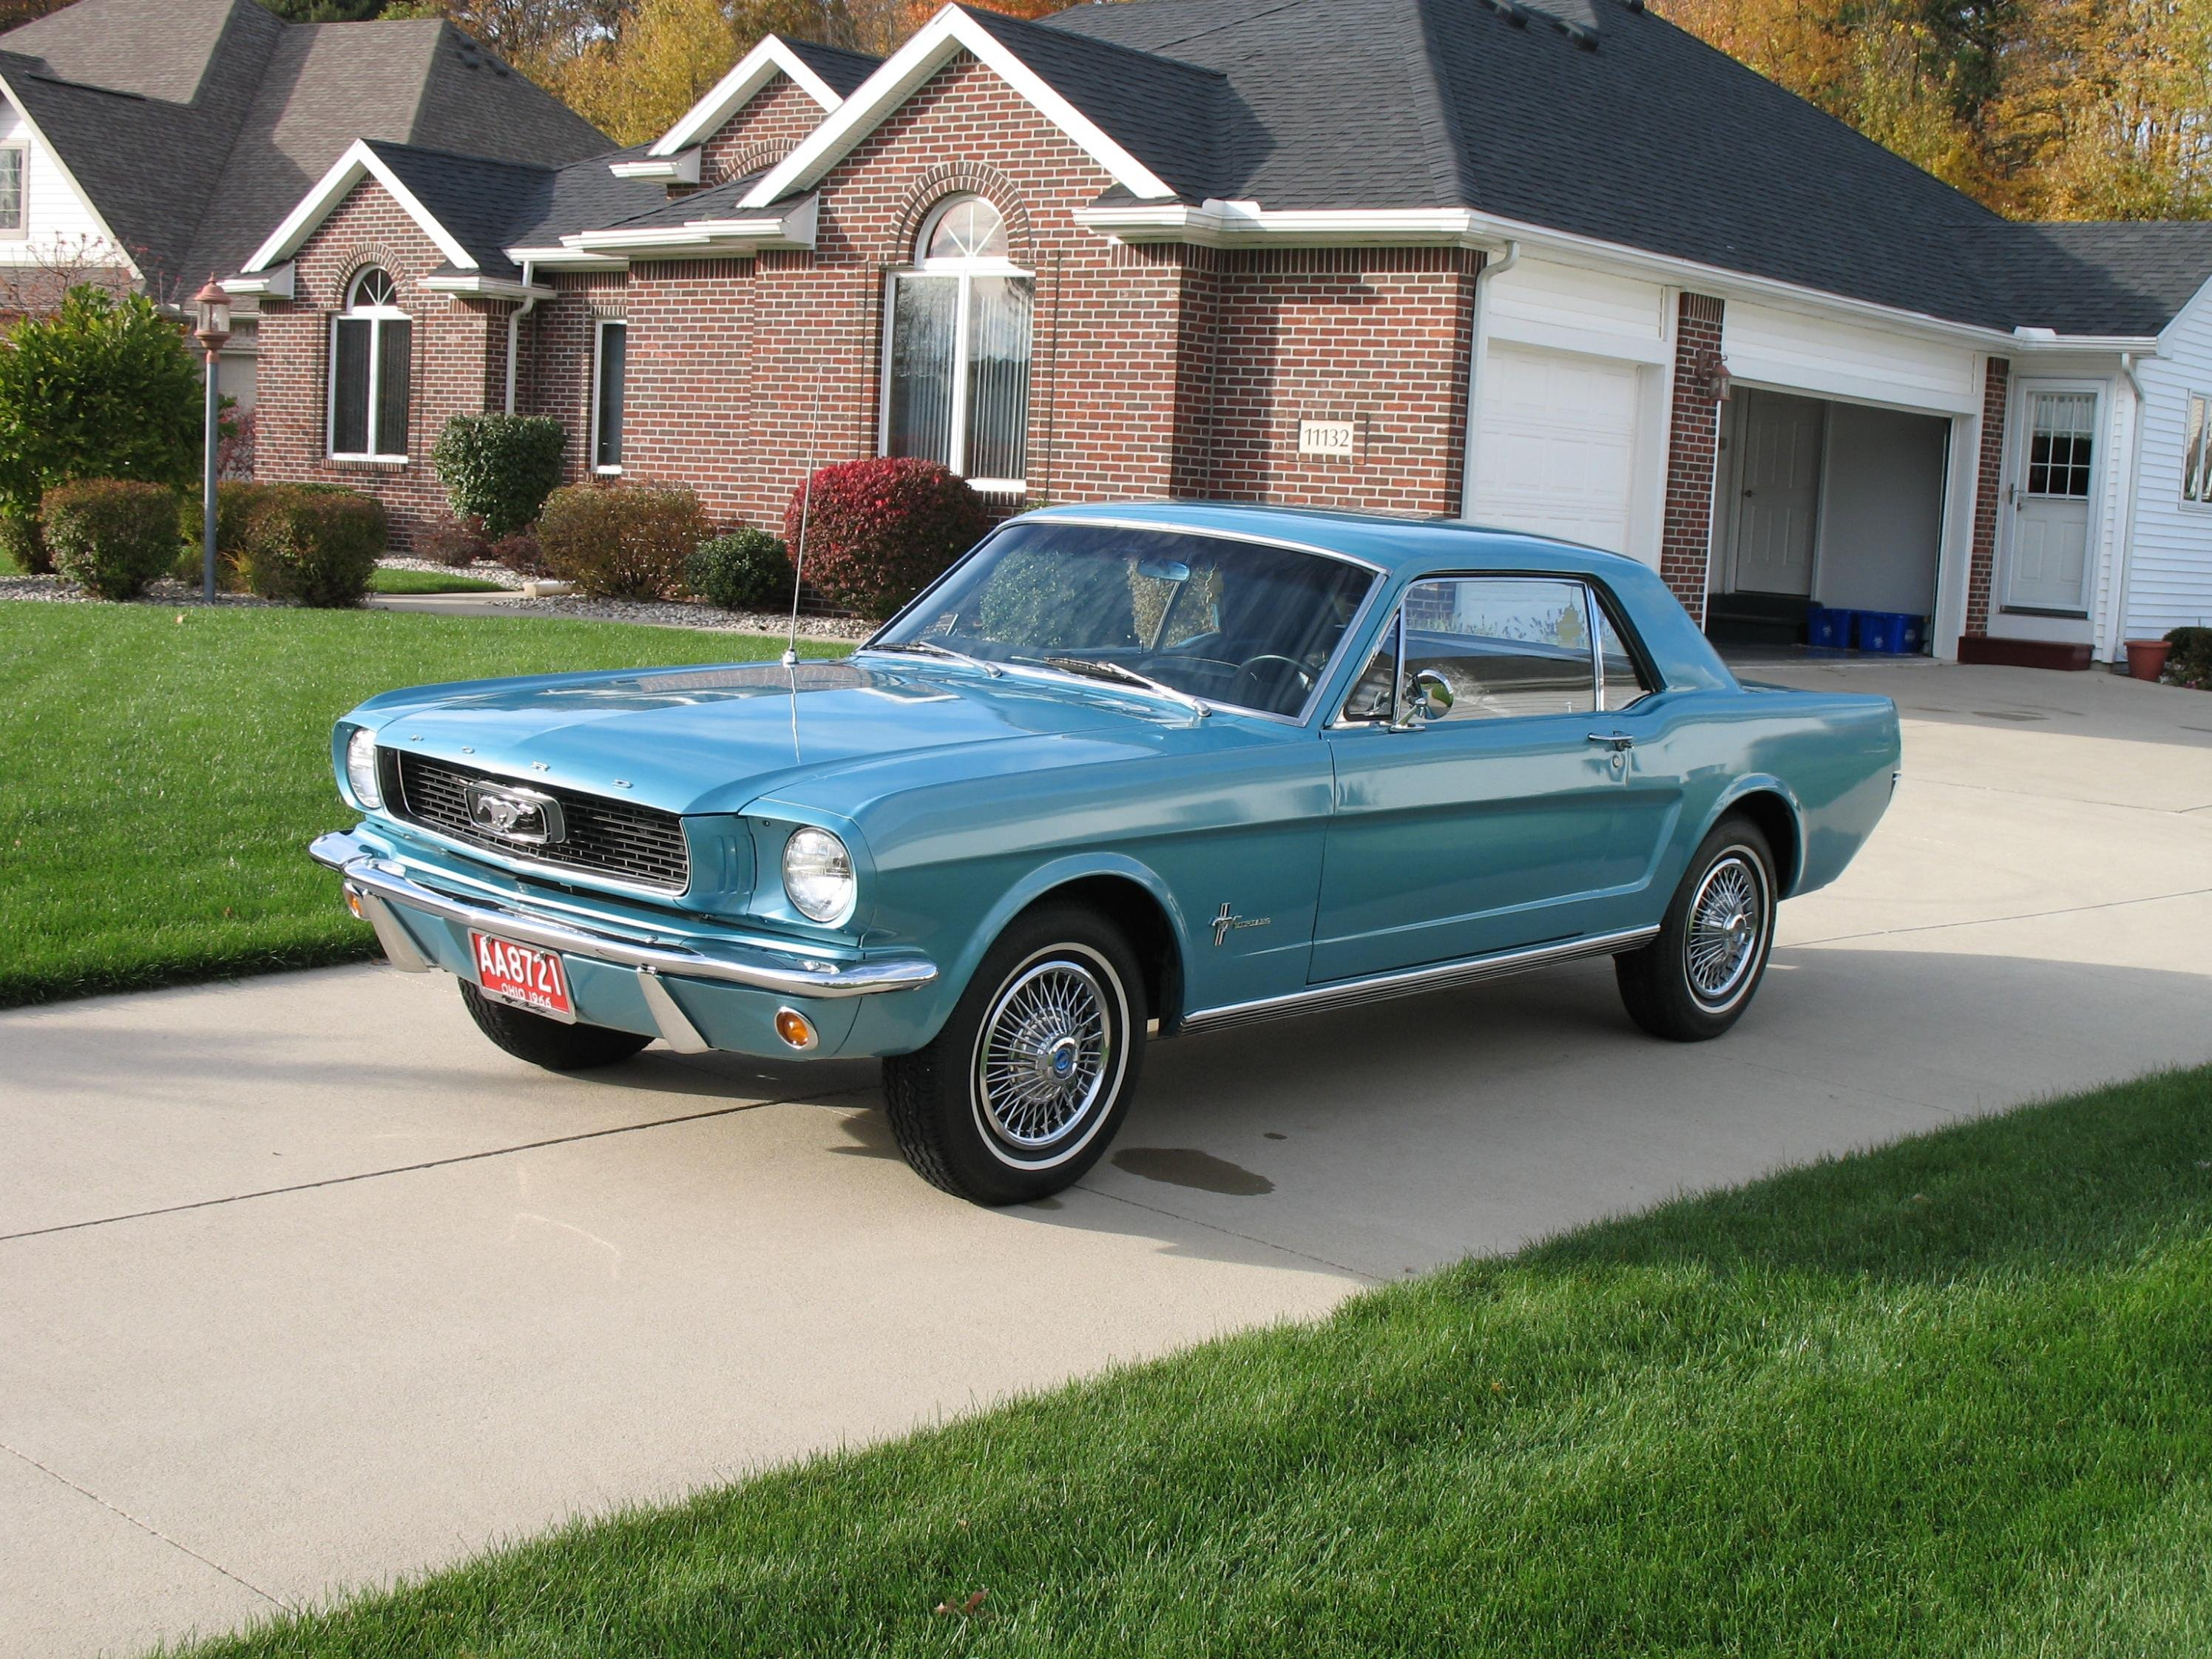 Ford Paint Colors >> 1966 Mustang-What is the real Tahoe Turquoise color? - Ford Mustang Forum